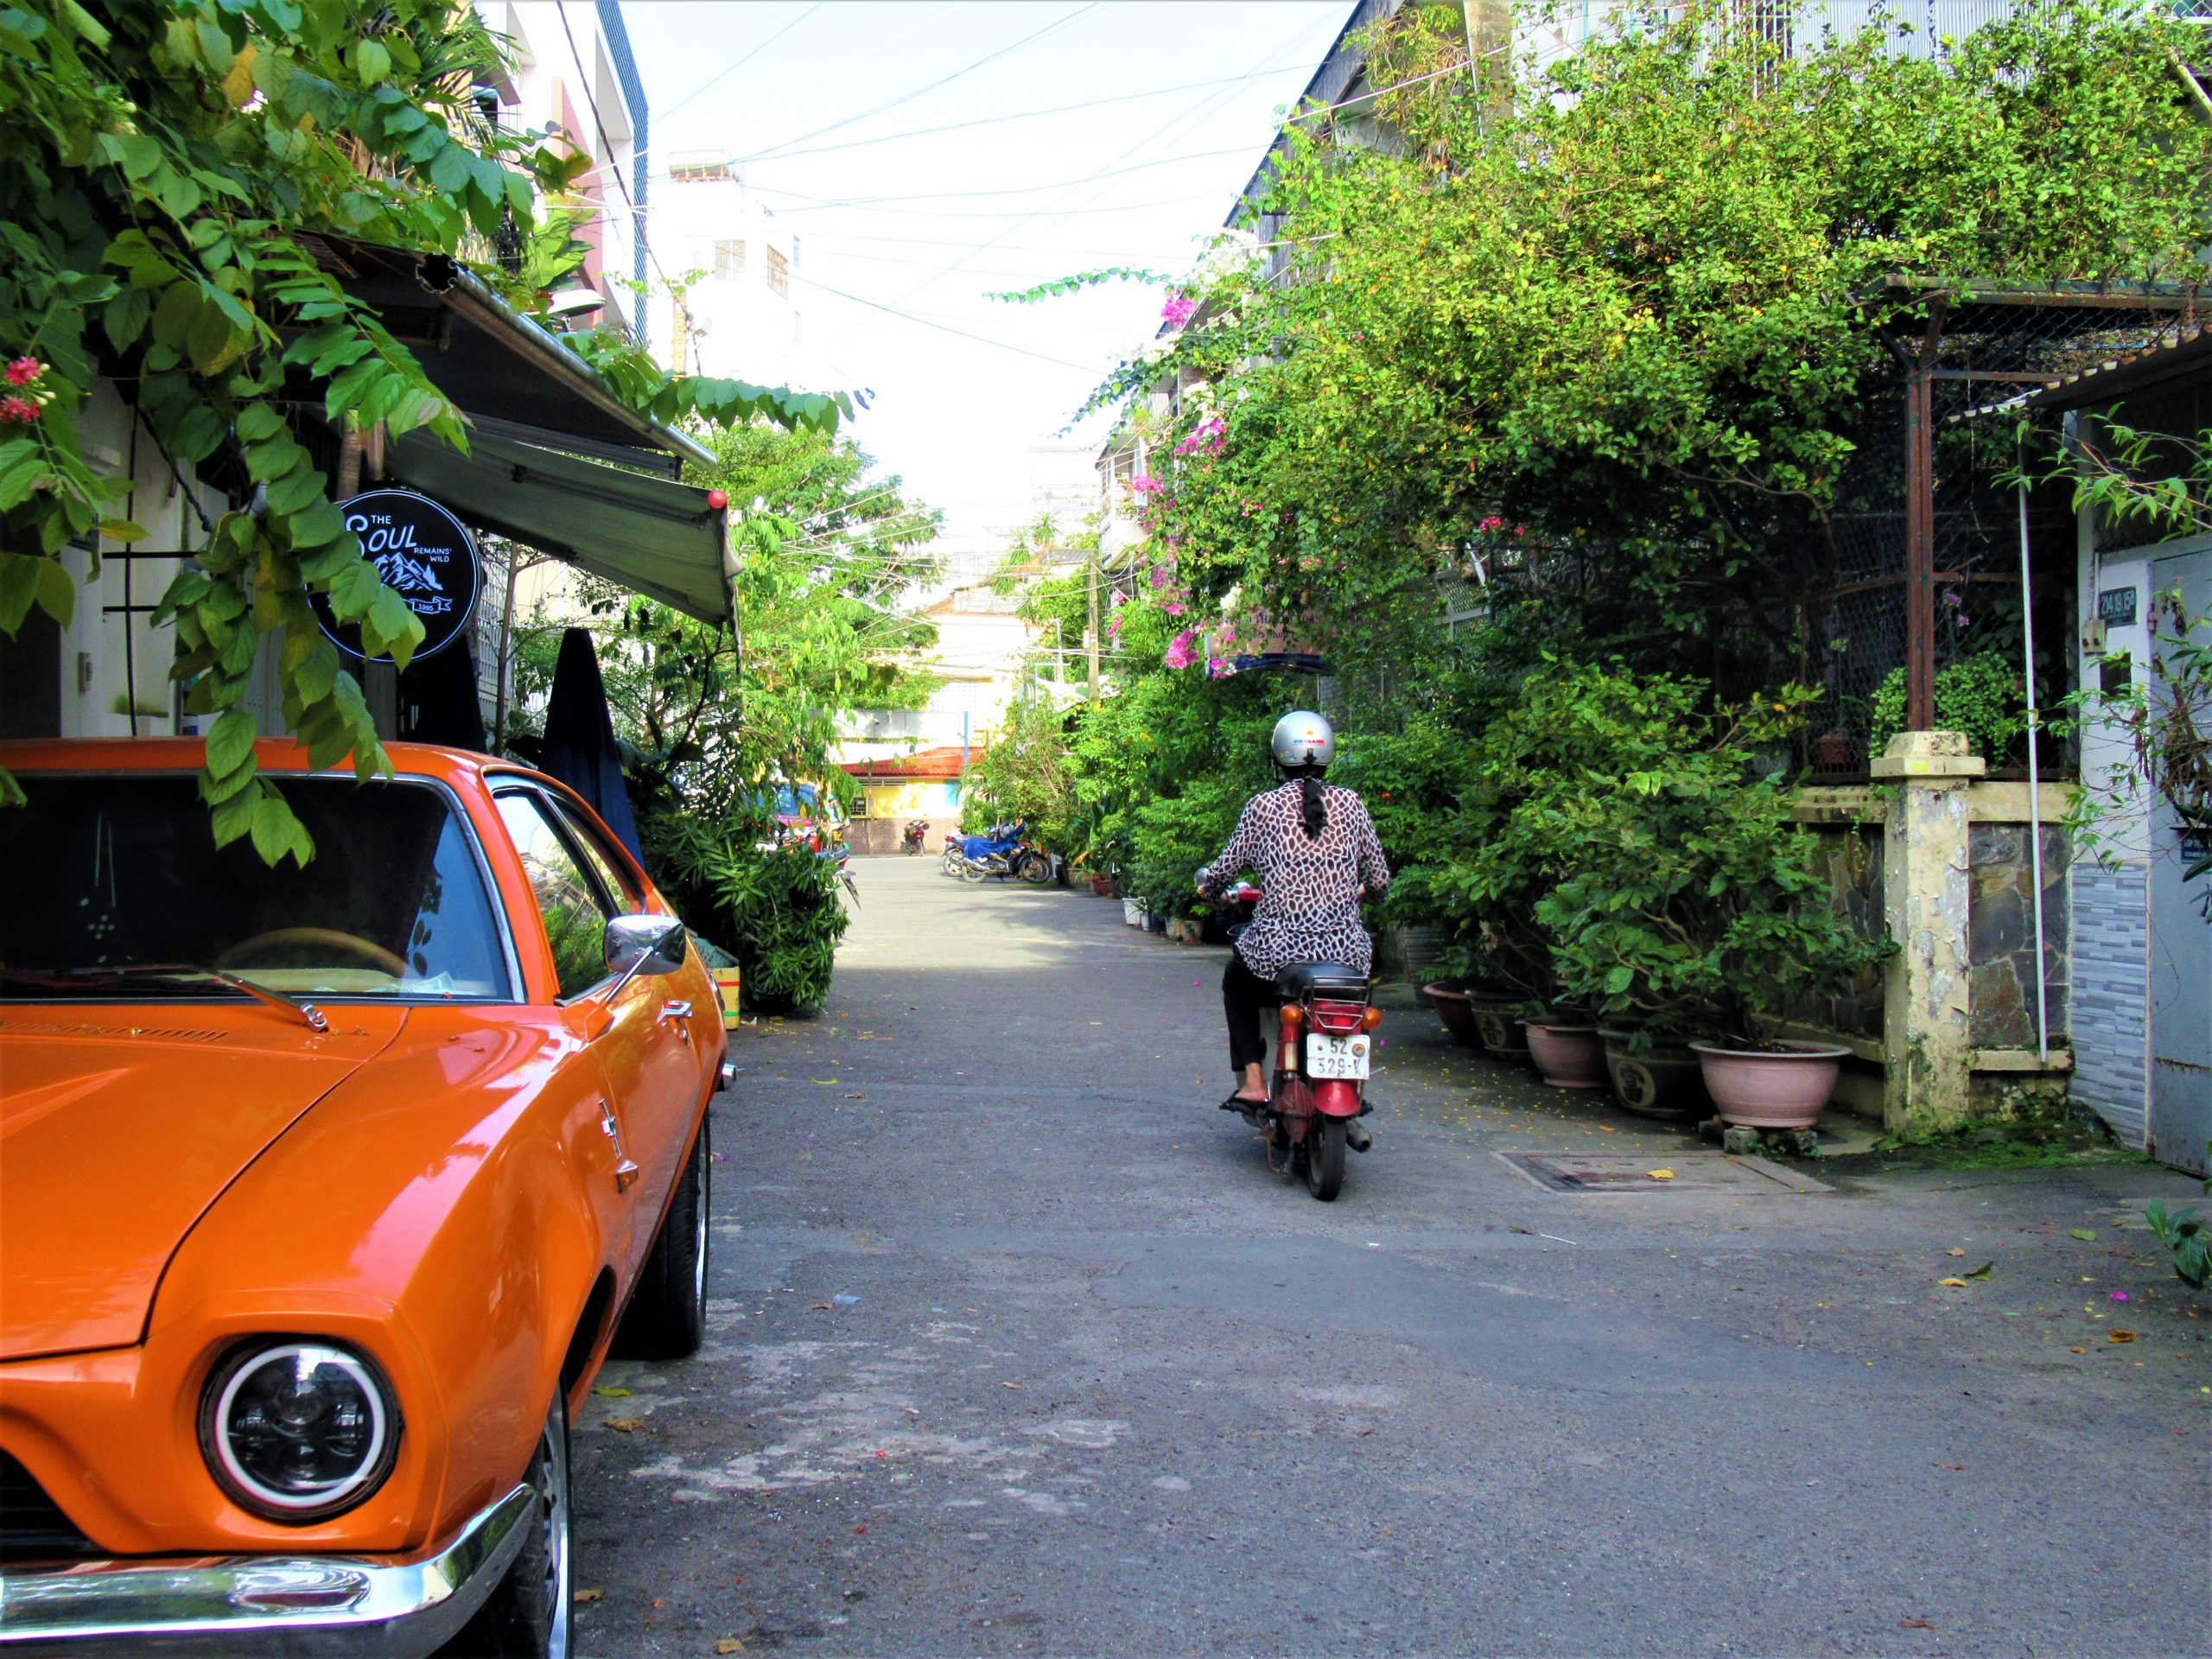 Tan Dinh neighbourhood alleyway, Saigon, Ho Chi Minh City